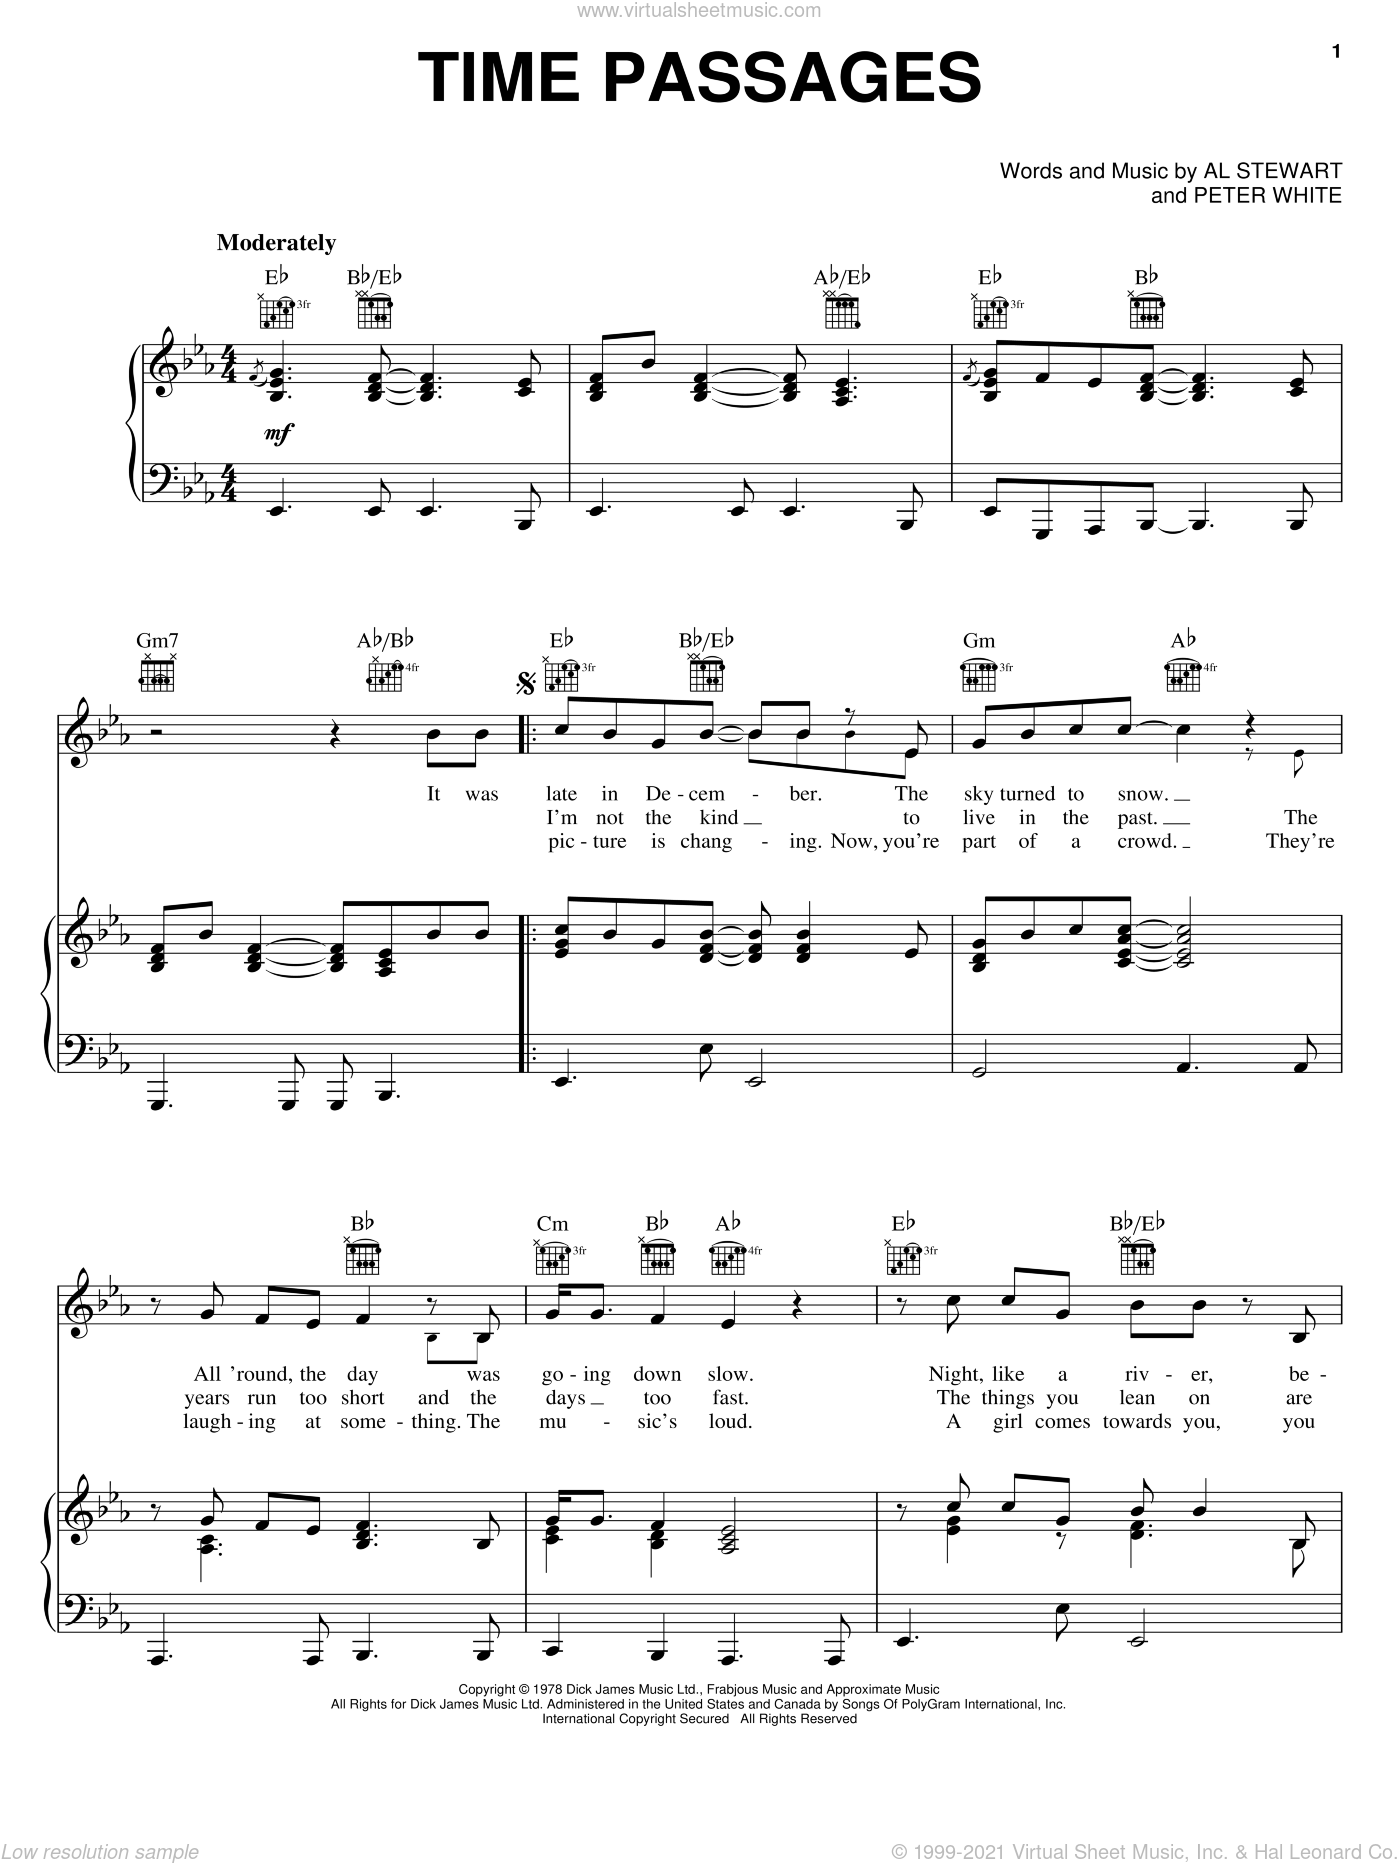 Time Passages sheet music for voice, piano or guitar by Al Stewart and Peter White, intermediate skill level